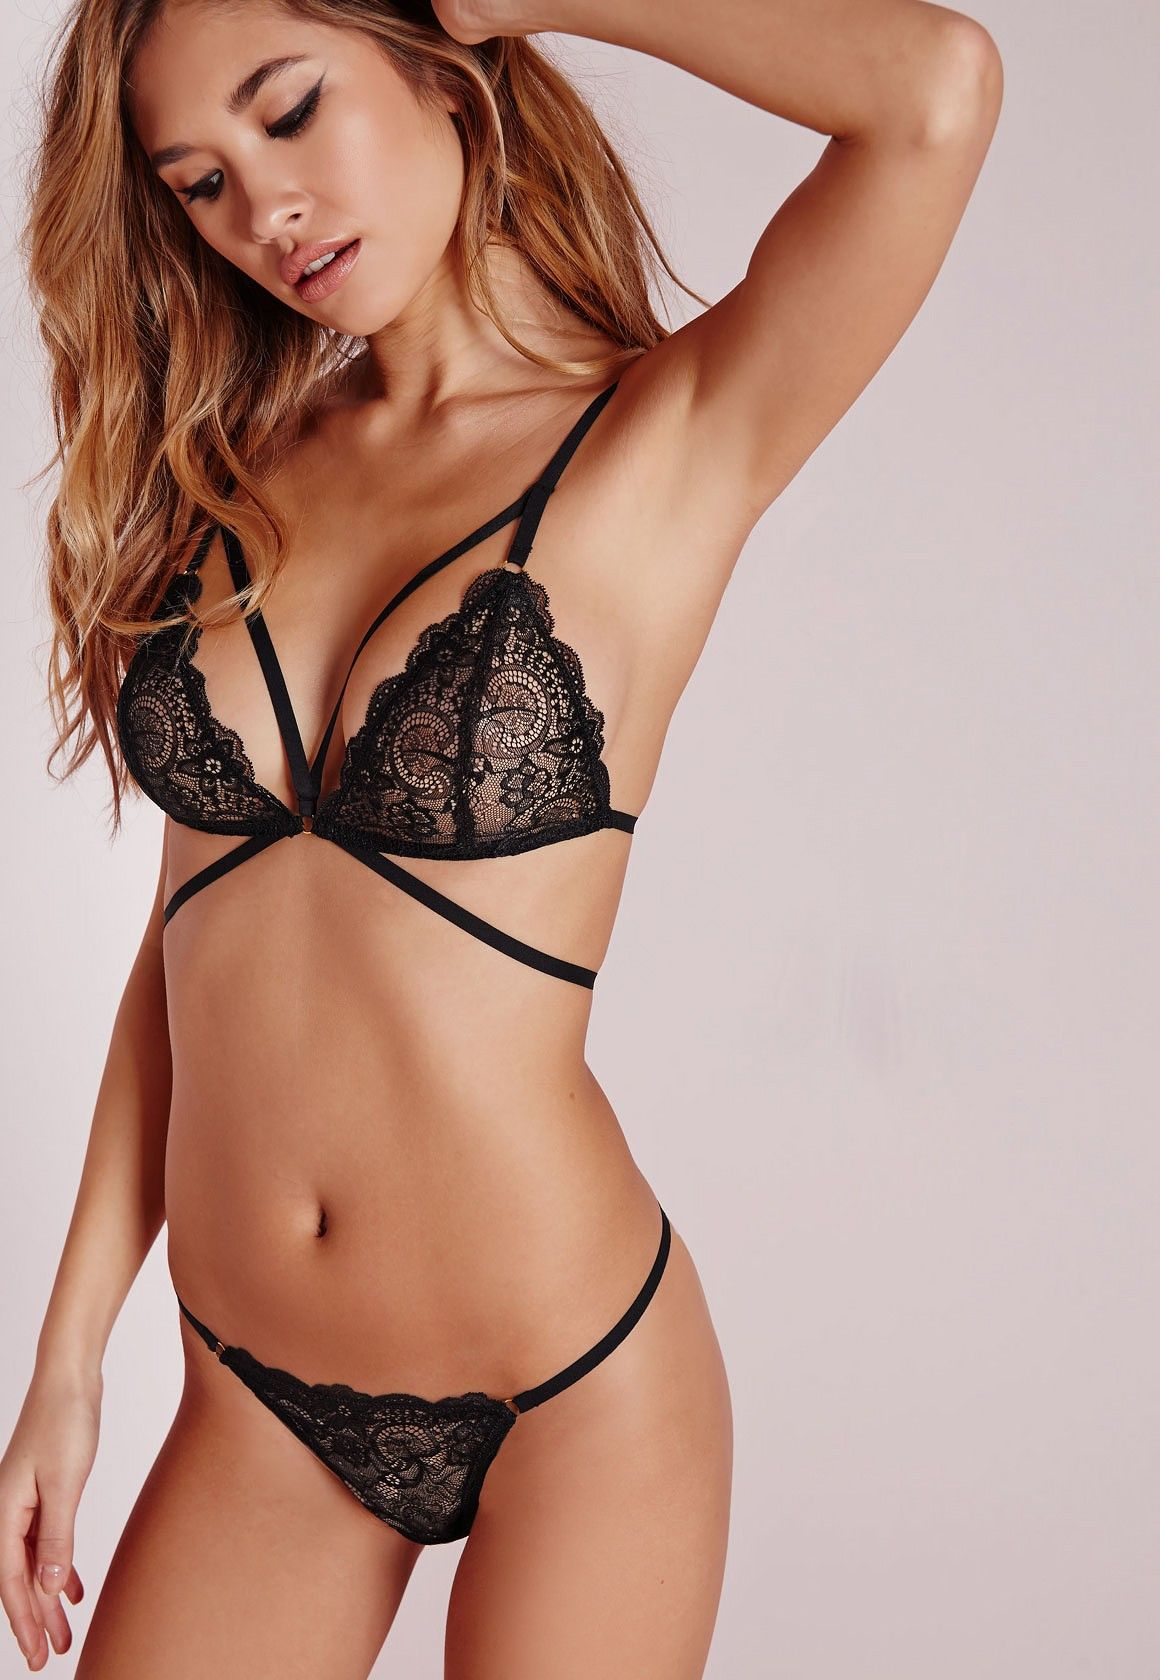 afccb9d64e Introducing the new Lingerie collection from Missguided